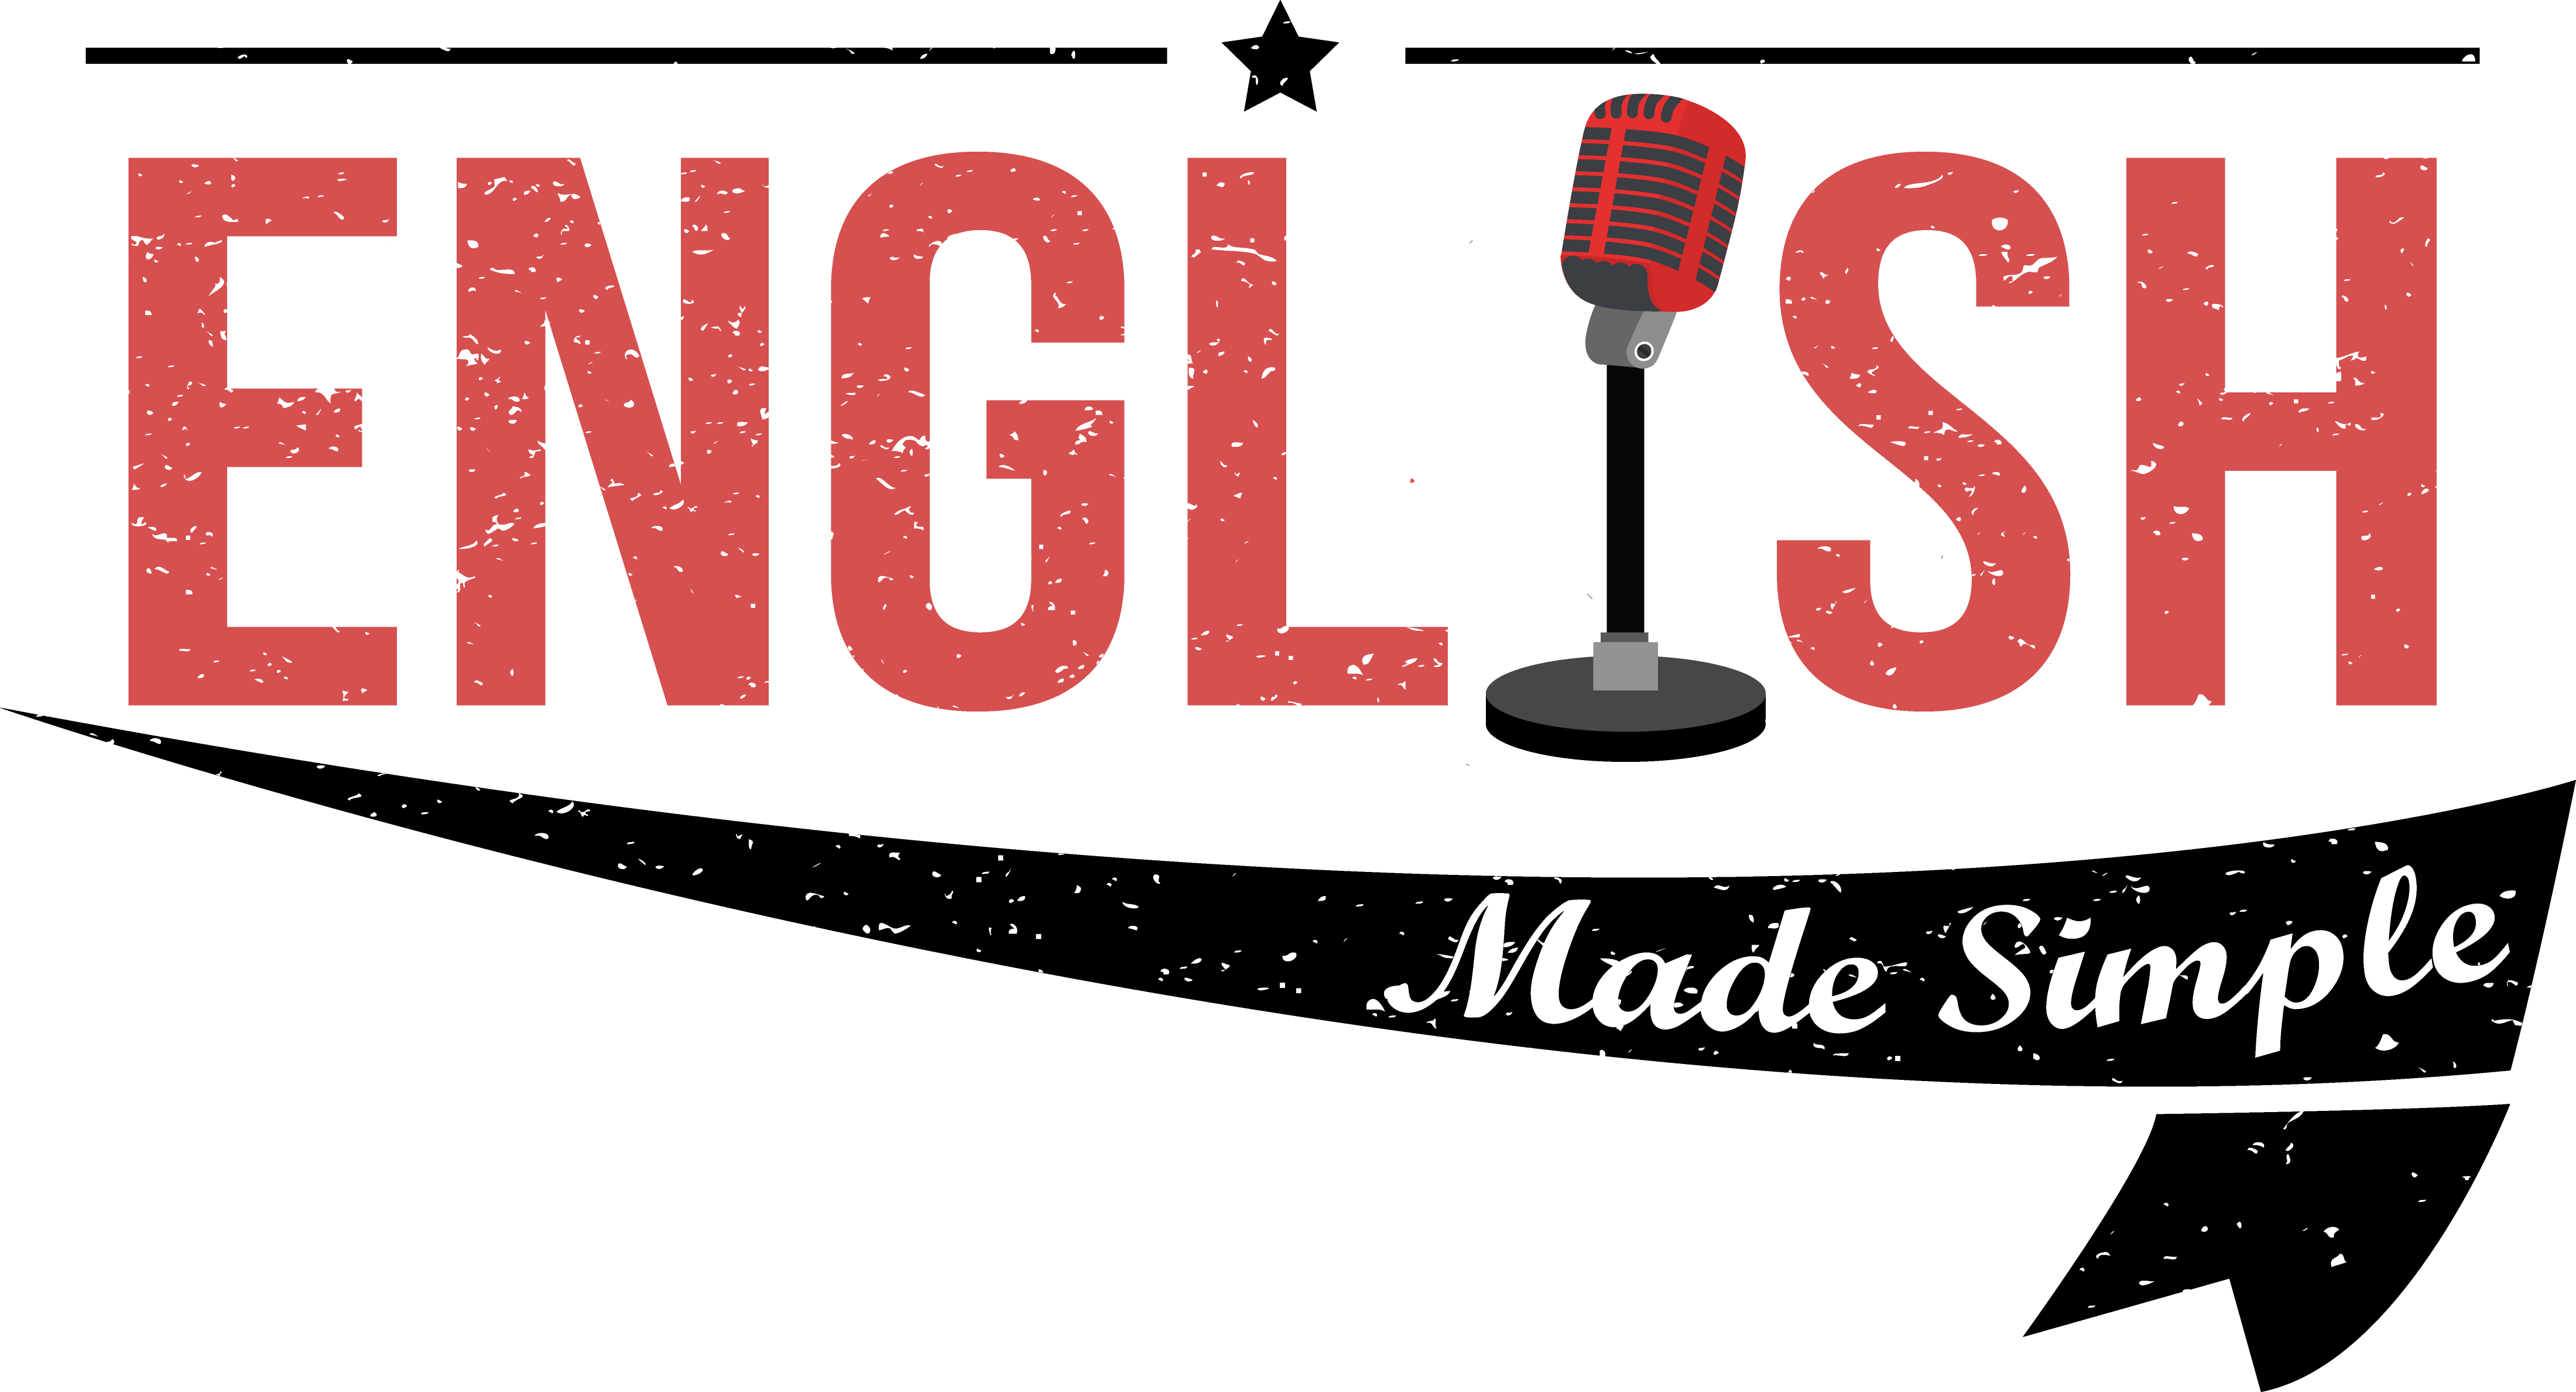 Transparent welcome simple. Podcast to english made